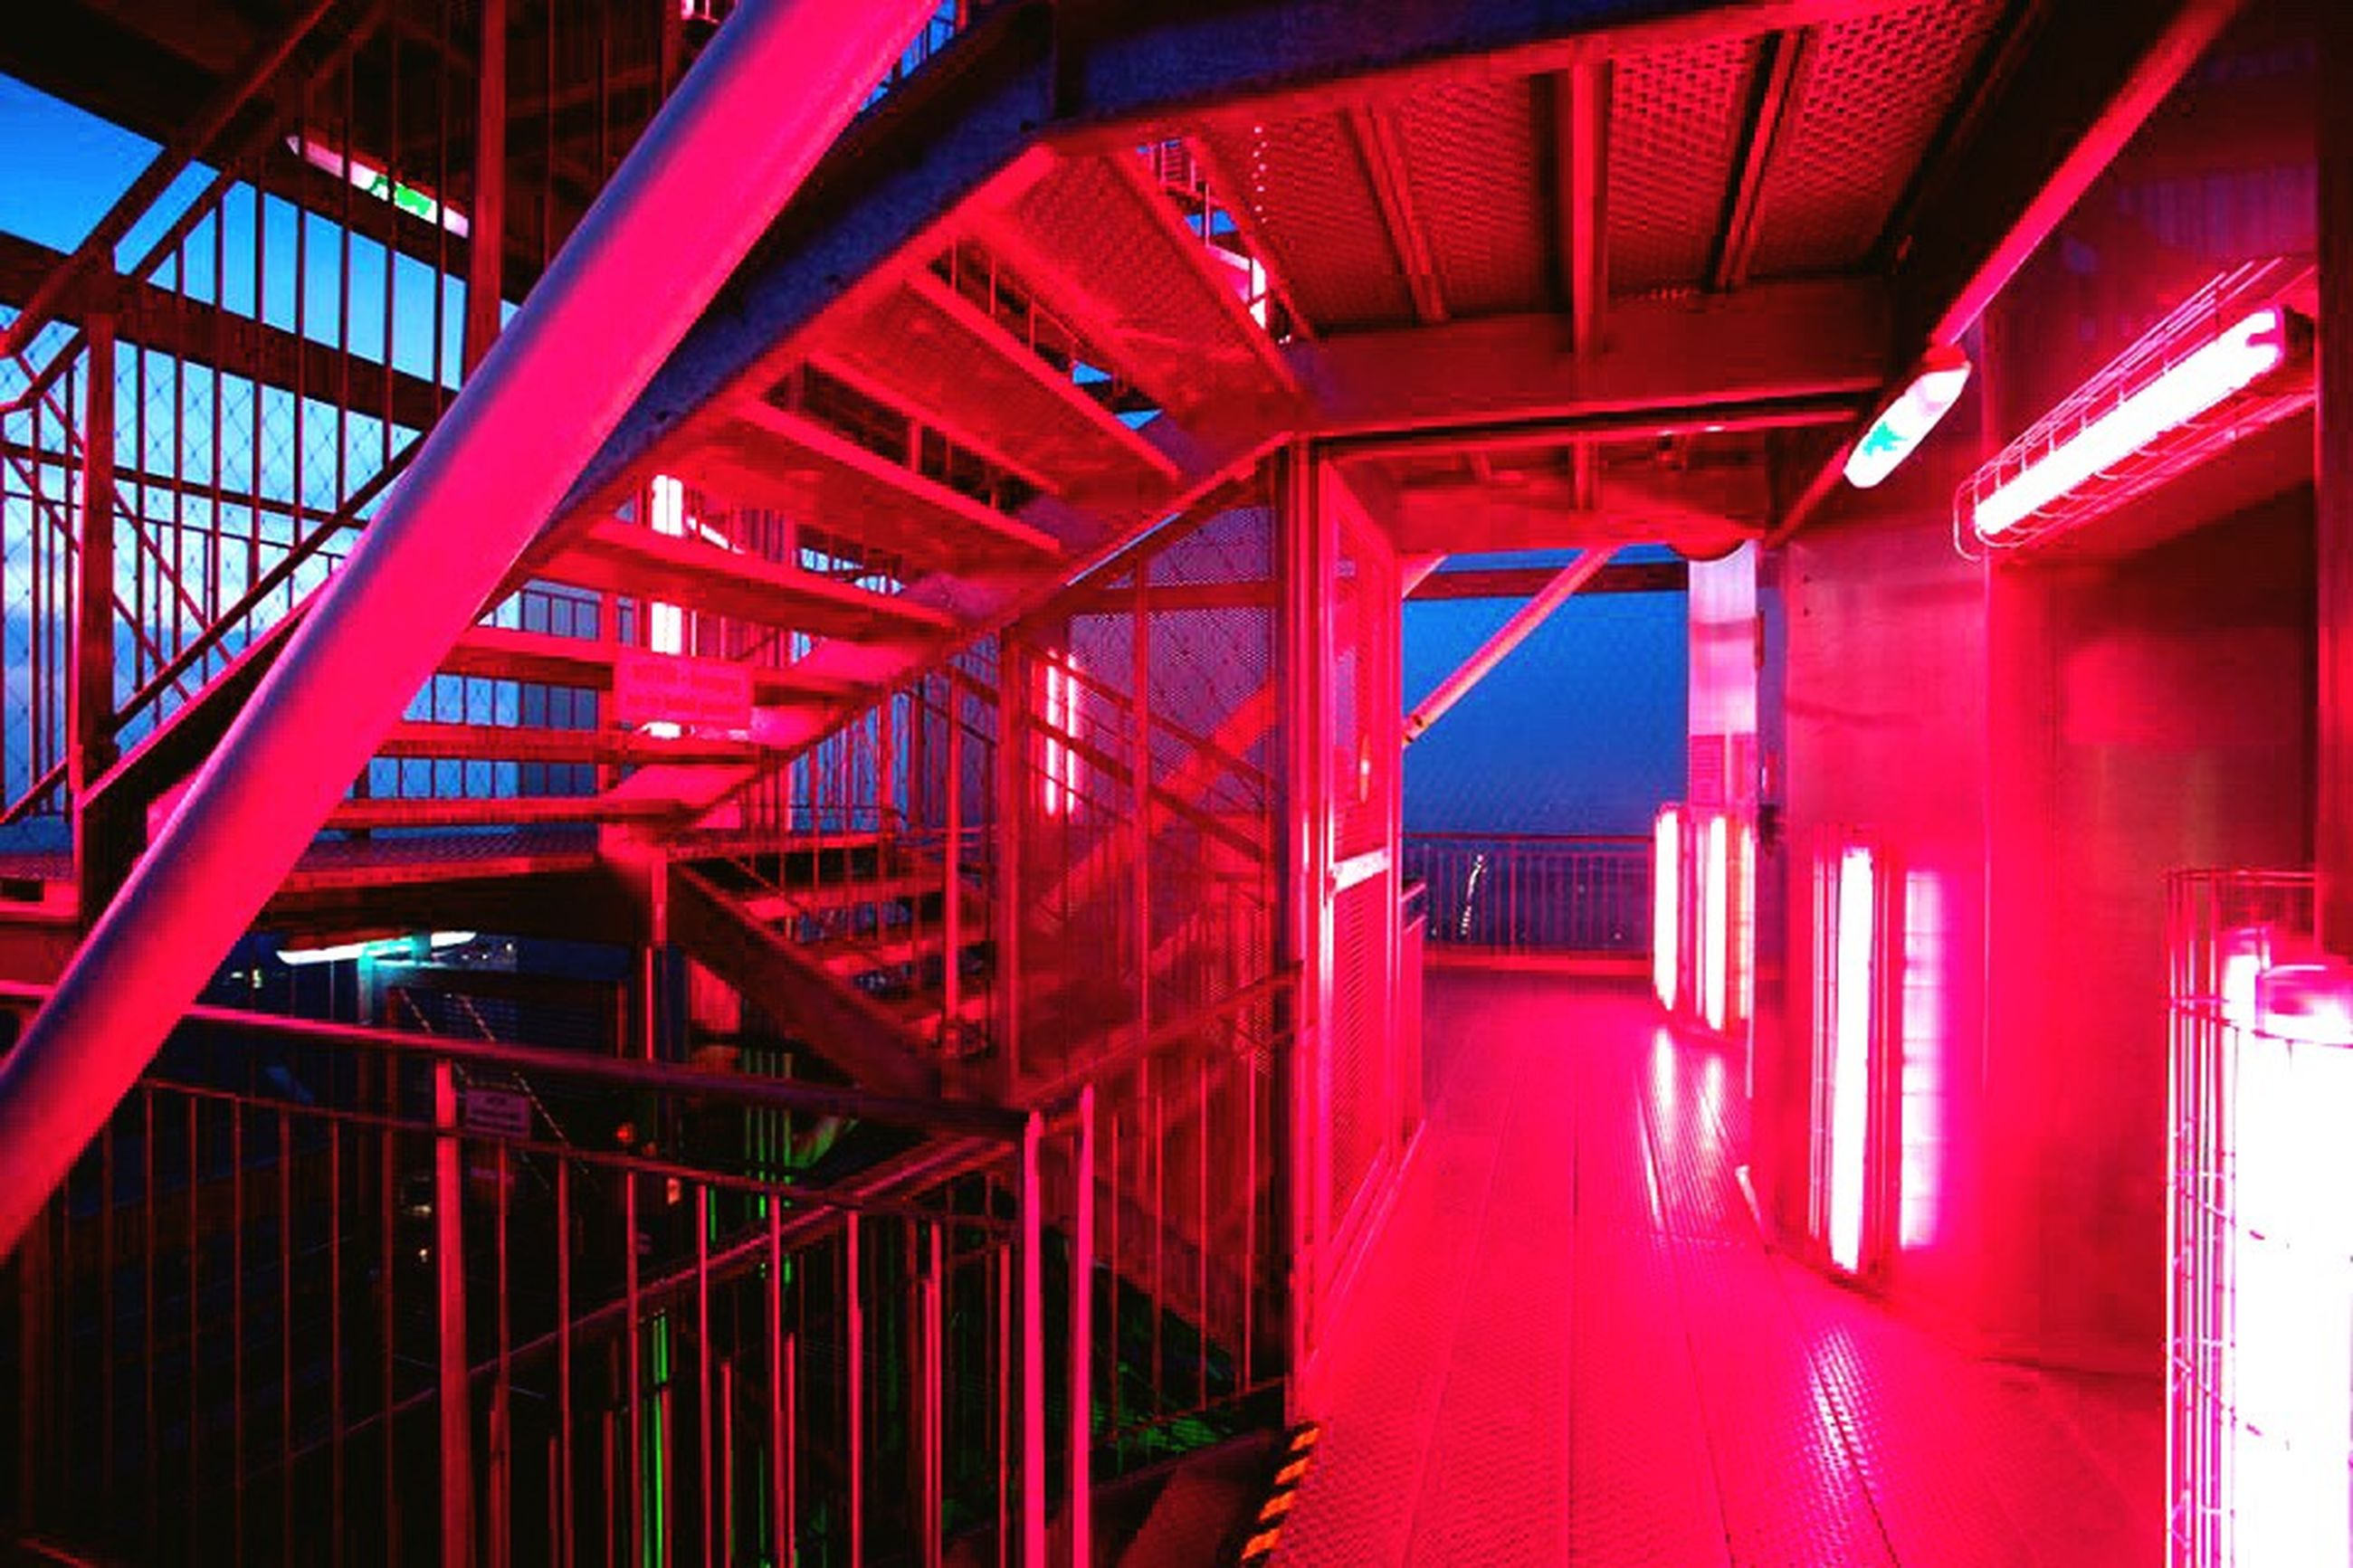 red, indoors, architecture, built structure, illuminated, railing, transportation, steps and staircases, staircase, metal, steps, no people, low angle view, public transportation, night, railroad station, rail transportation, interior, train - vehicle, absence